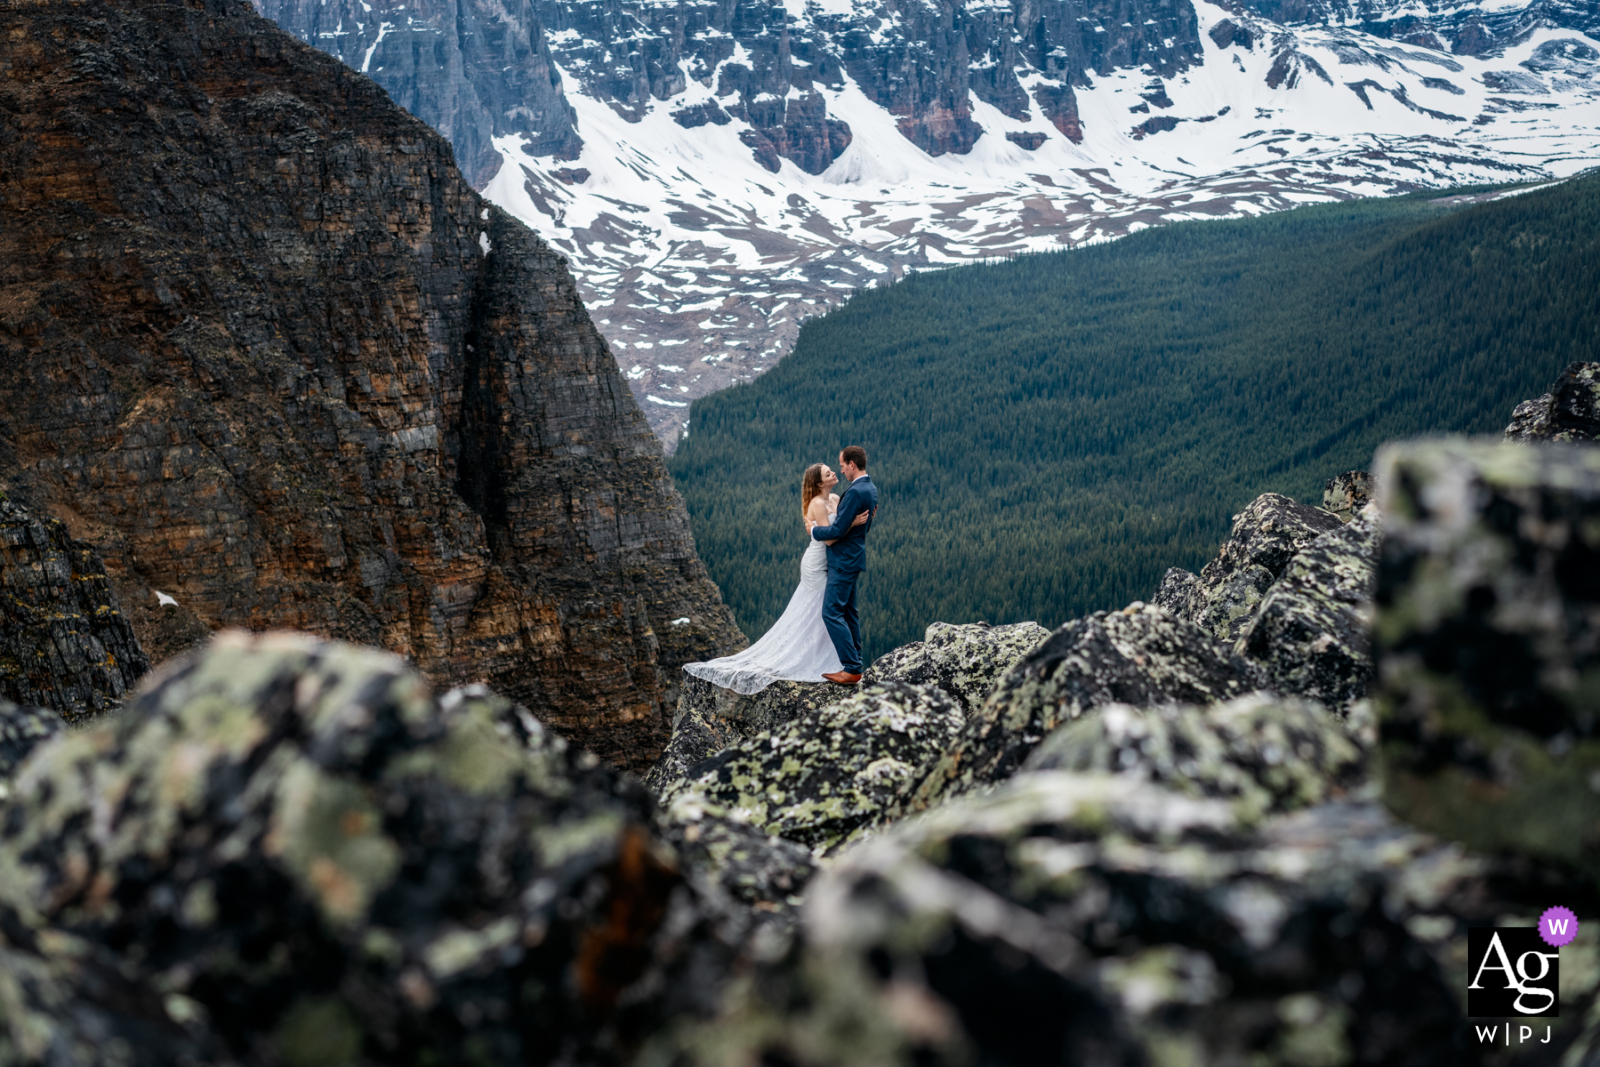 Alberta Artistic Wedding Photographer captures this bride and groom together at the Tower of Babel, Banff National Park